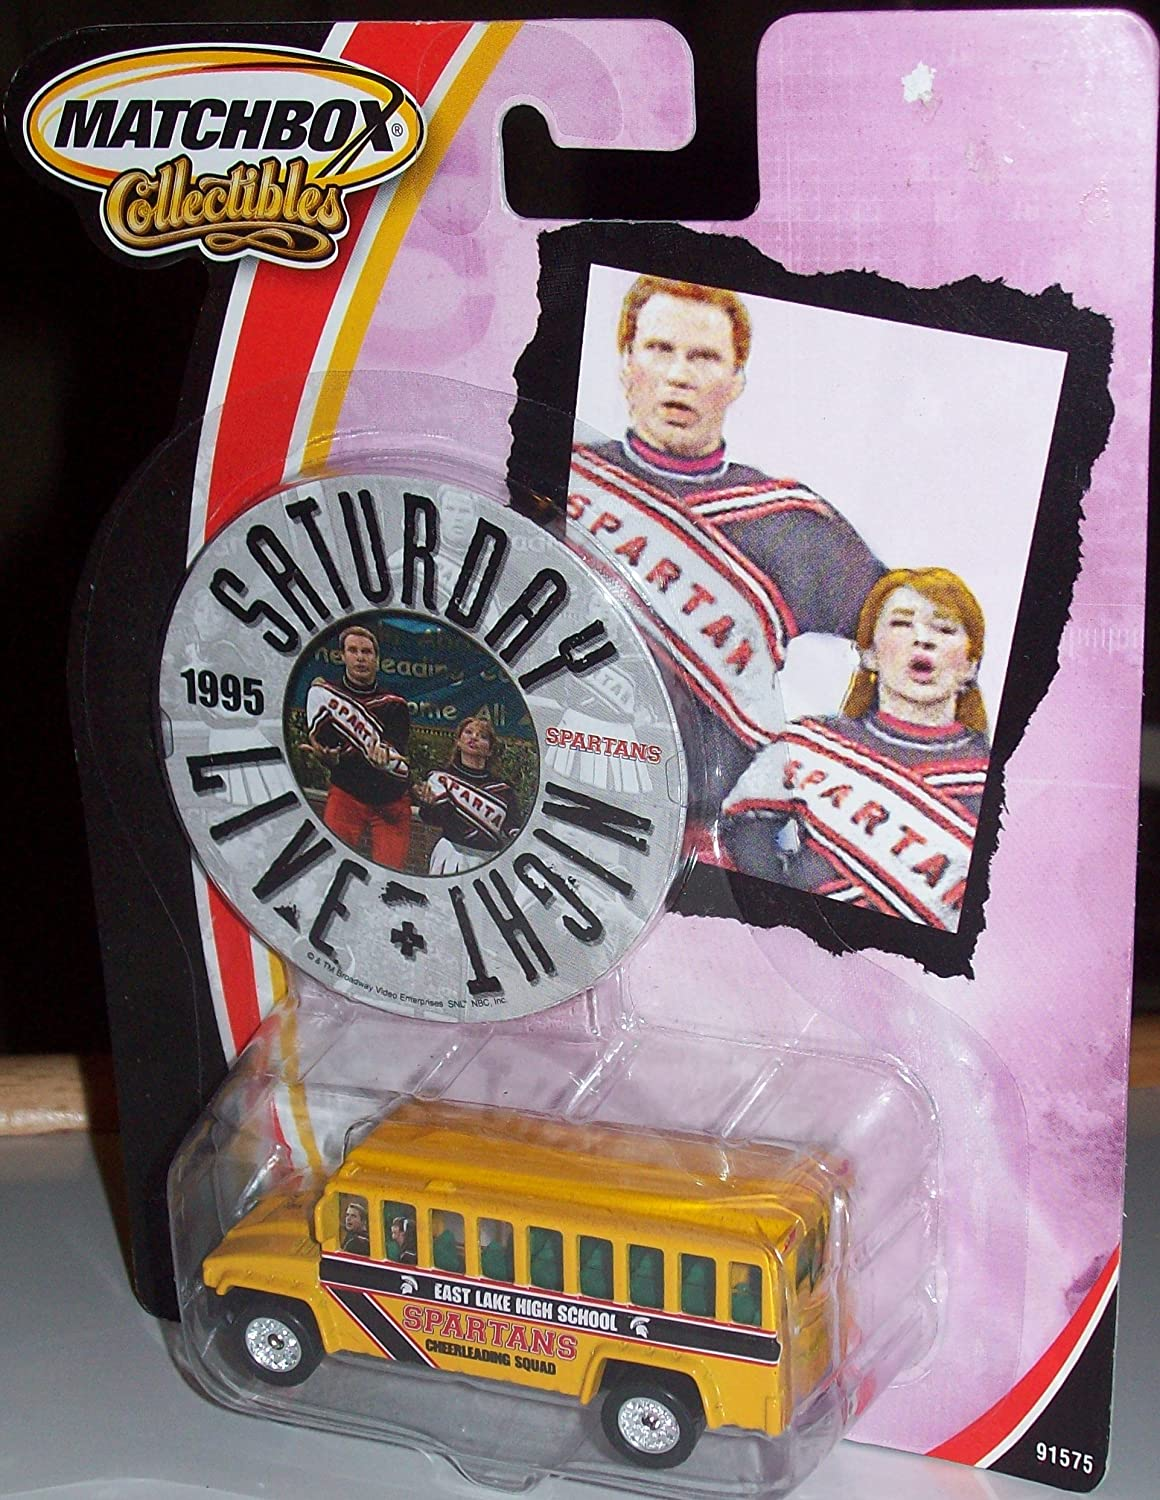 MATCHBOX COLLECIBLES 1995 SATURDAY NIGHT LIVE SPARTANS BUS by Saturday Night Live